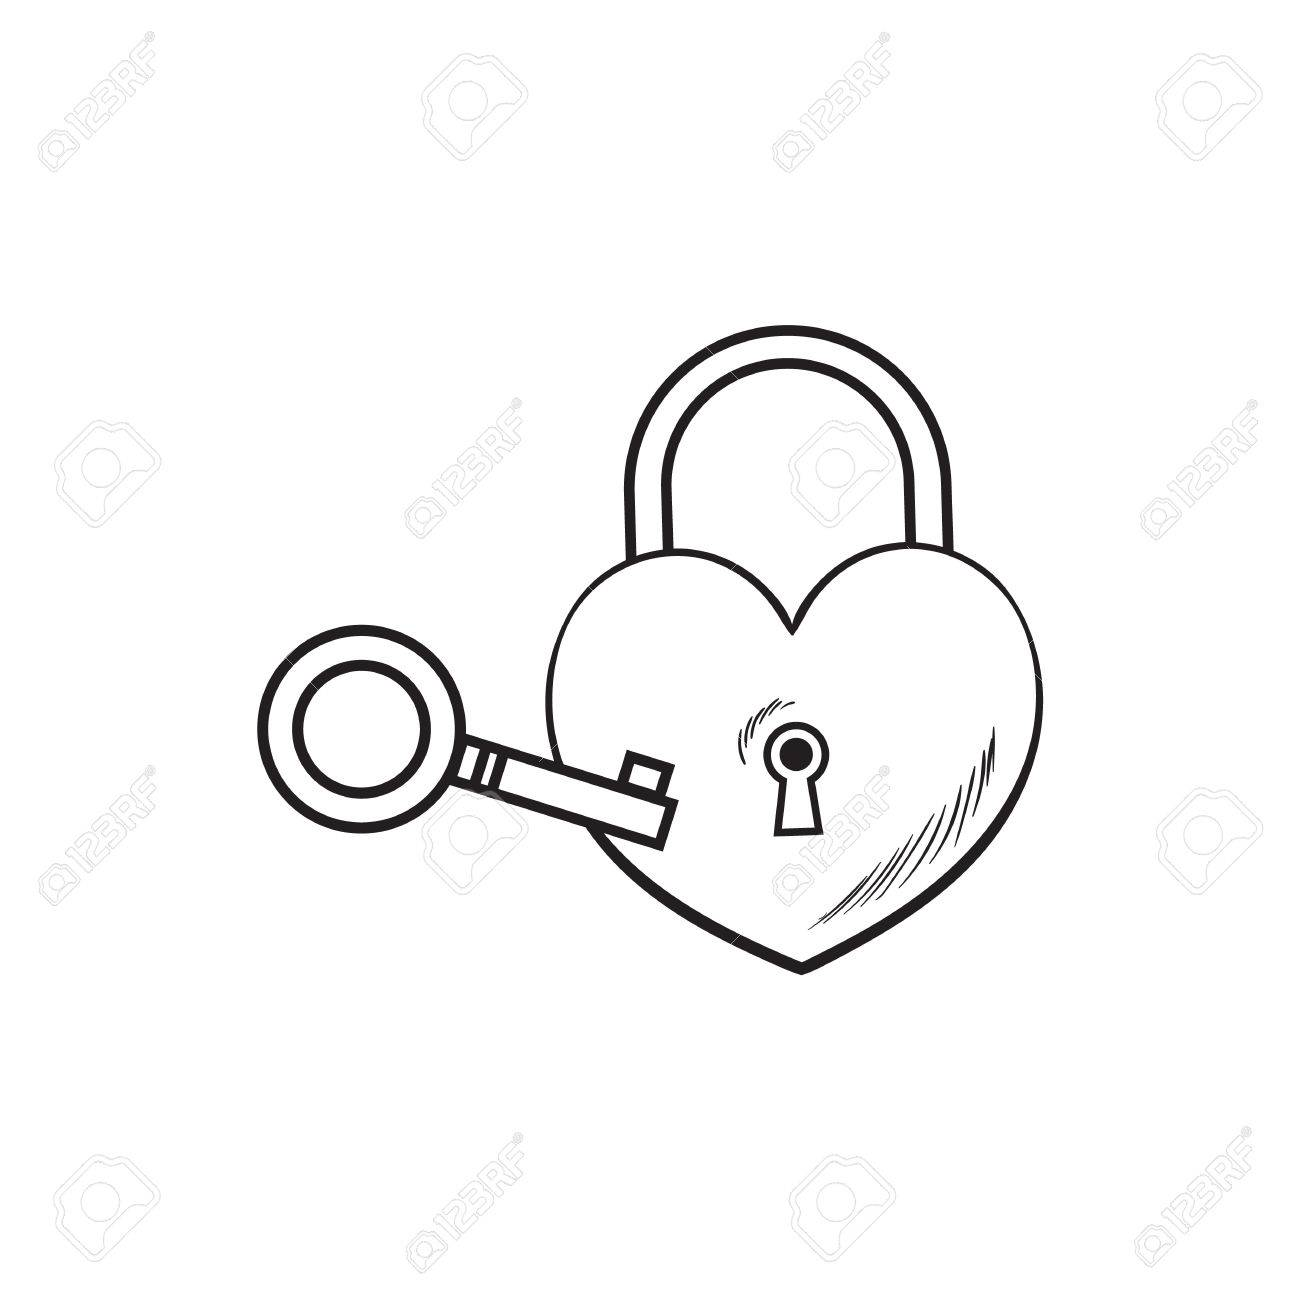 1300x1300 Heart Shaped Padlock And Key For Love Lock Unity Ceremony, Sketch